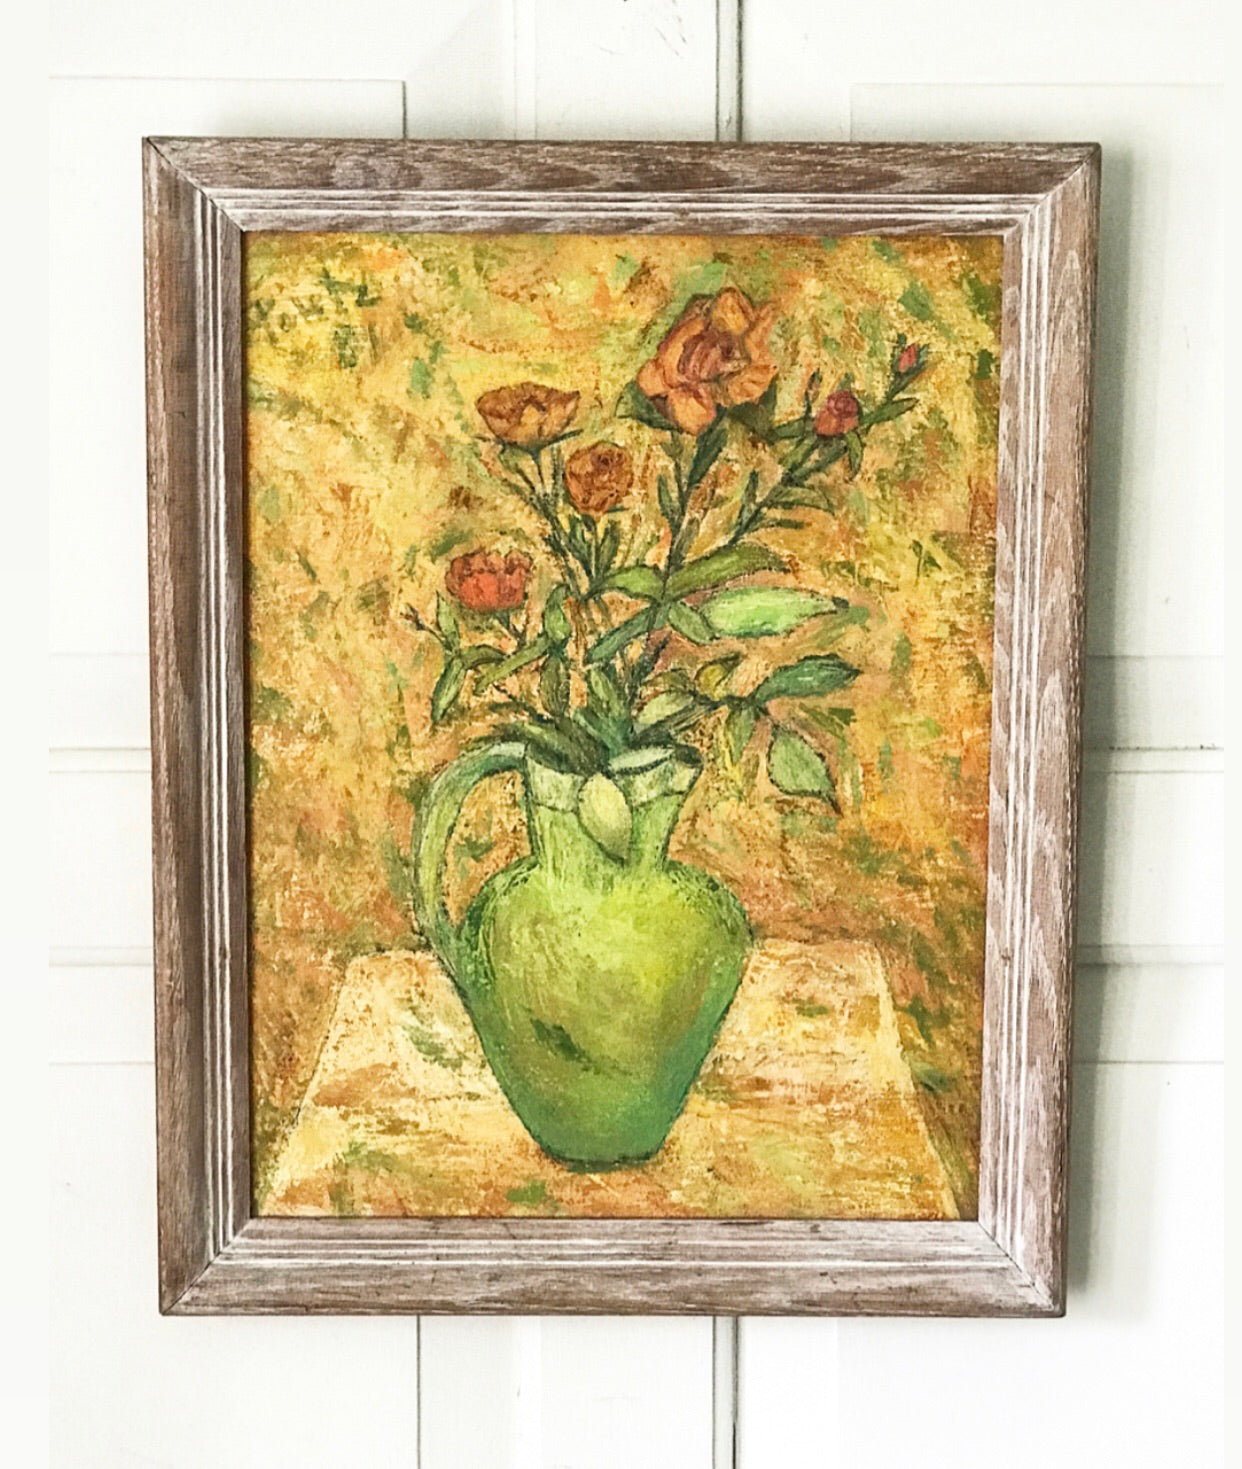 Mid 20th Century Still life of Roses in Green Vase.